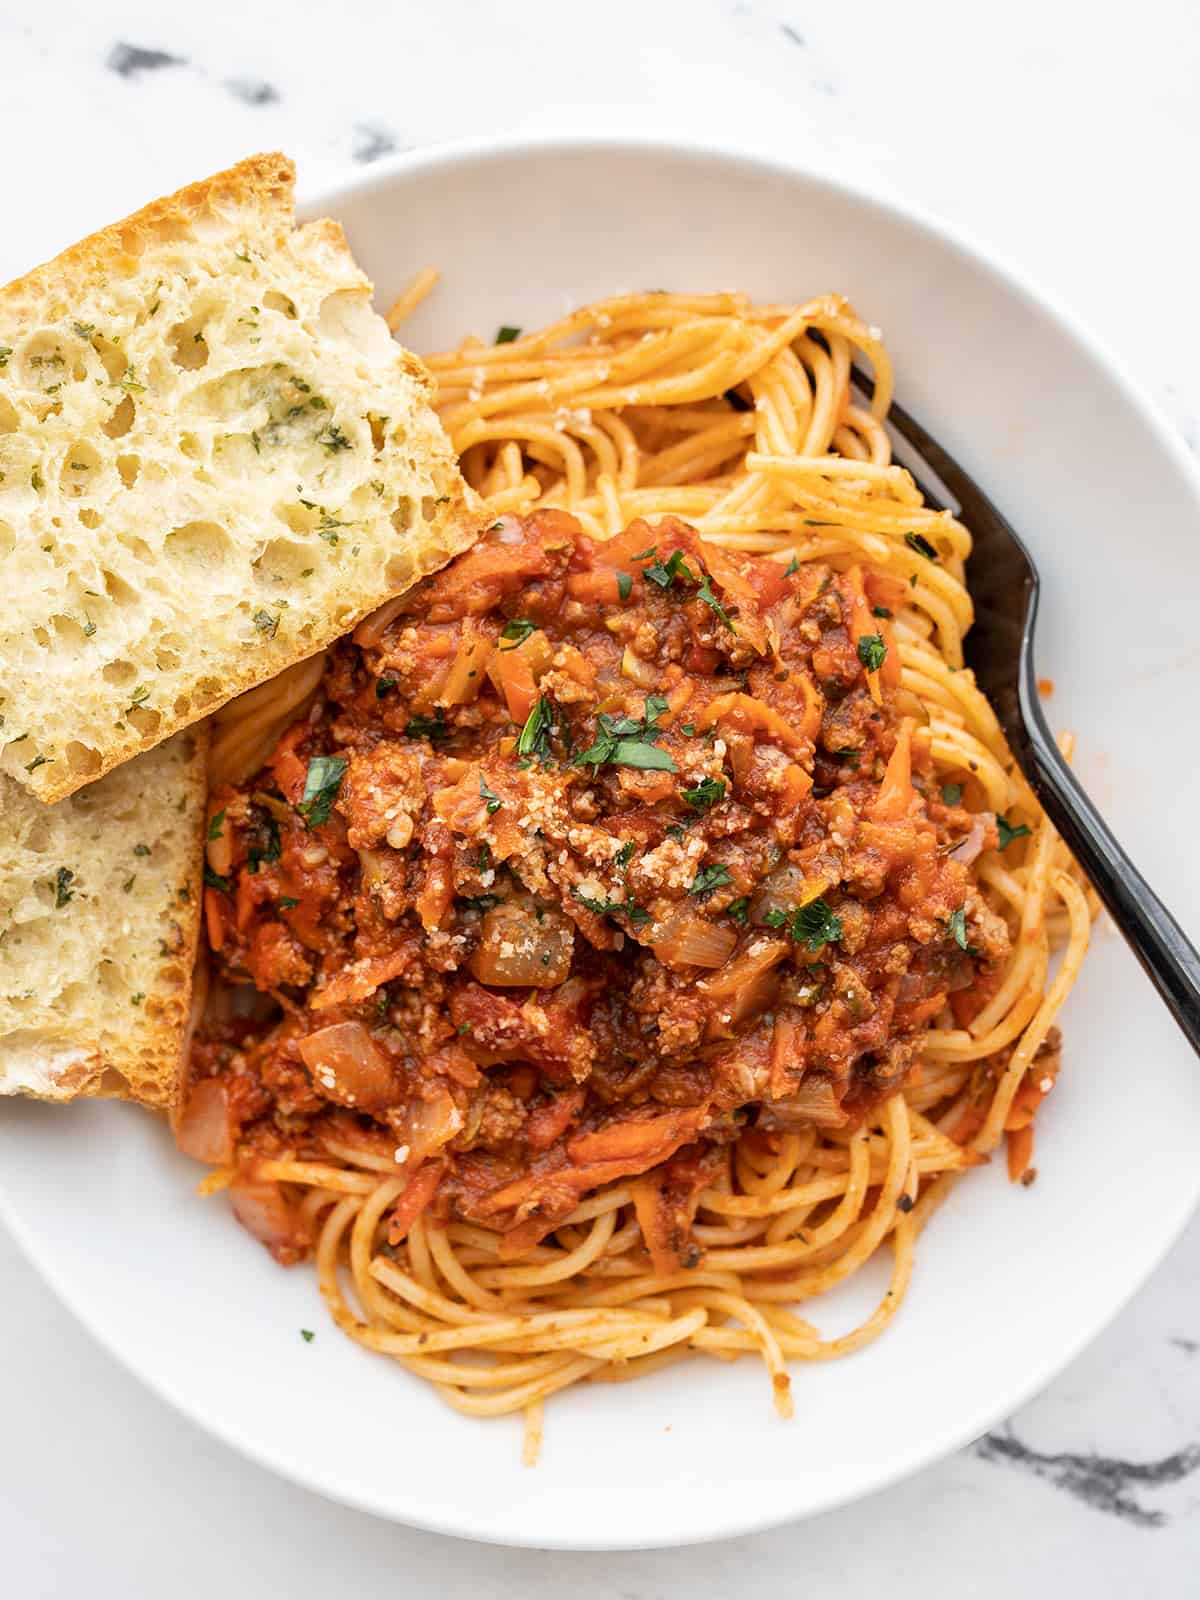 Overhead view of a bowl of spaghetti with hidden vegetable pasta sauce and garlic bread on the side